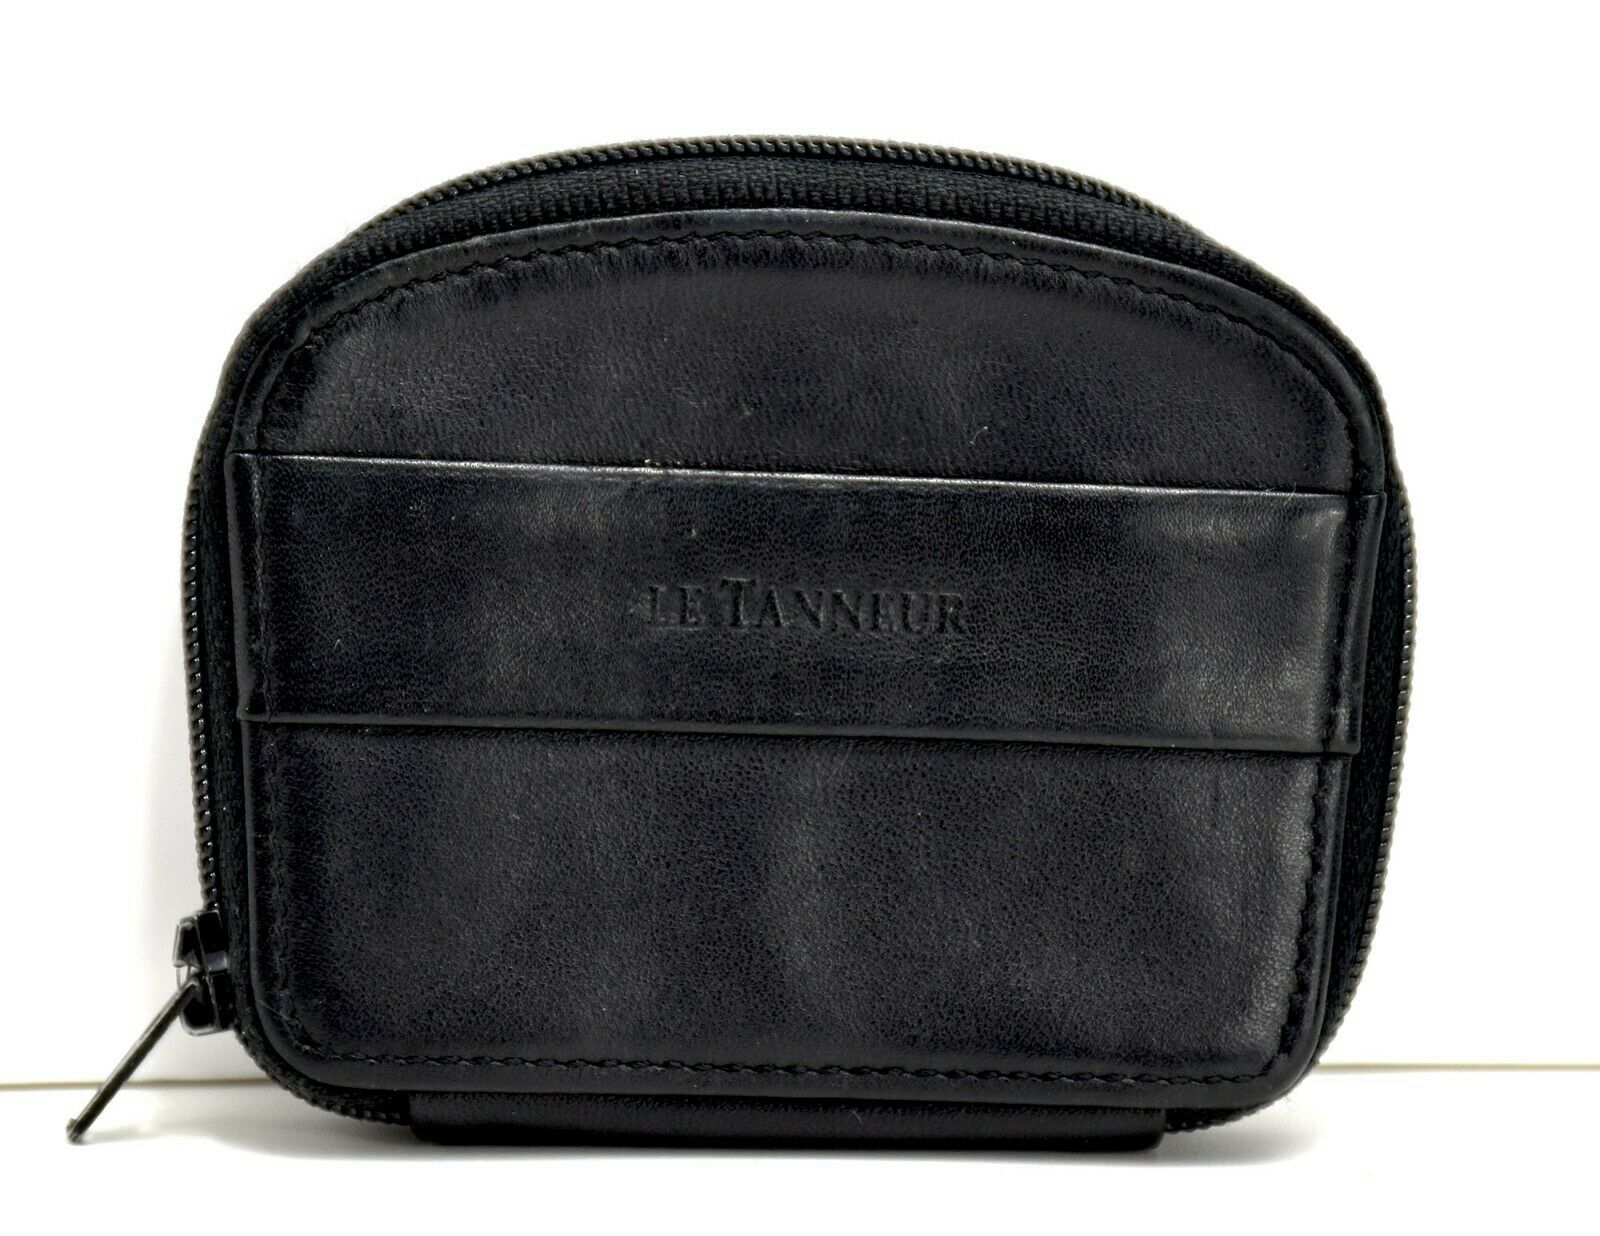 Le Tanneur Leather Womens Leather Zip Coin Purse Wallet with Zip Closure Black